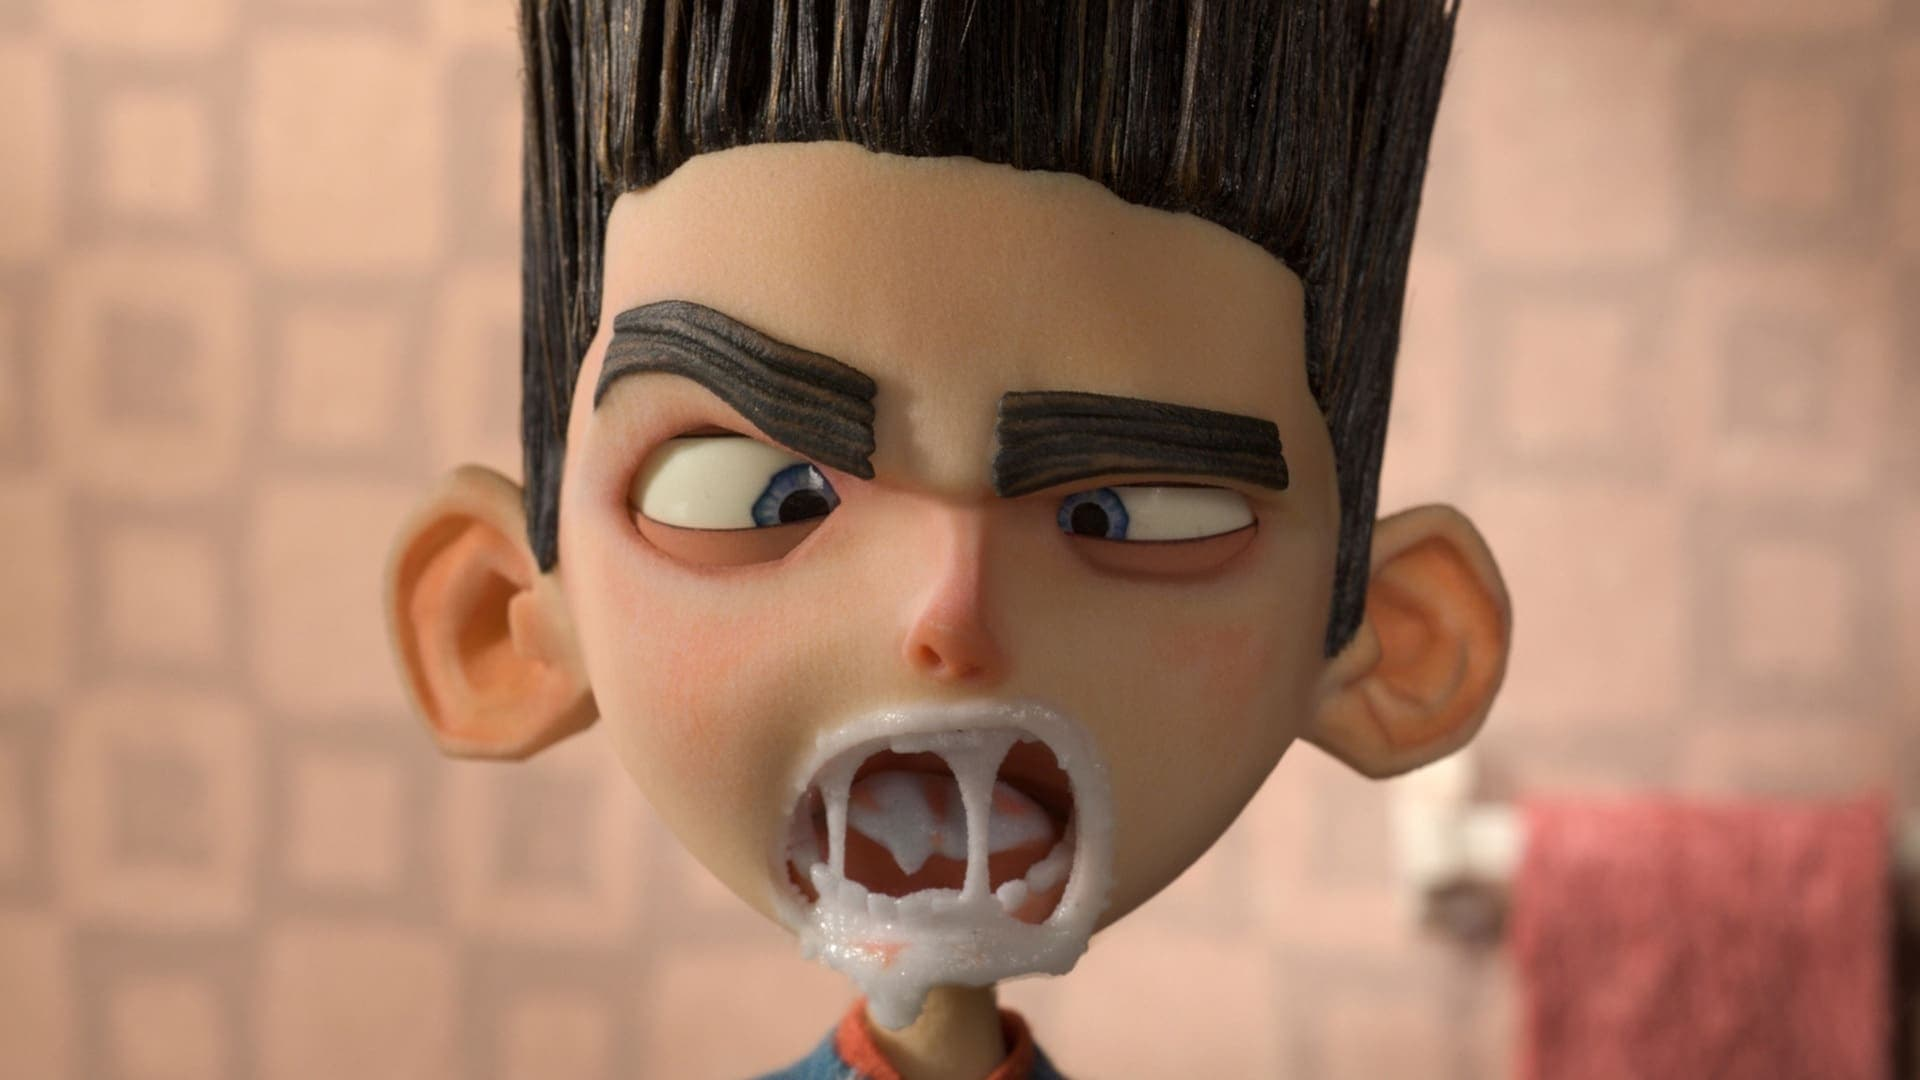 Norman from ParaNorman